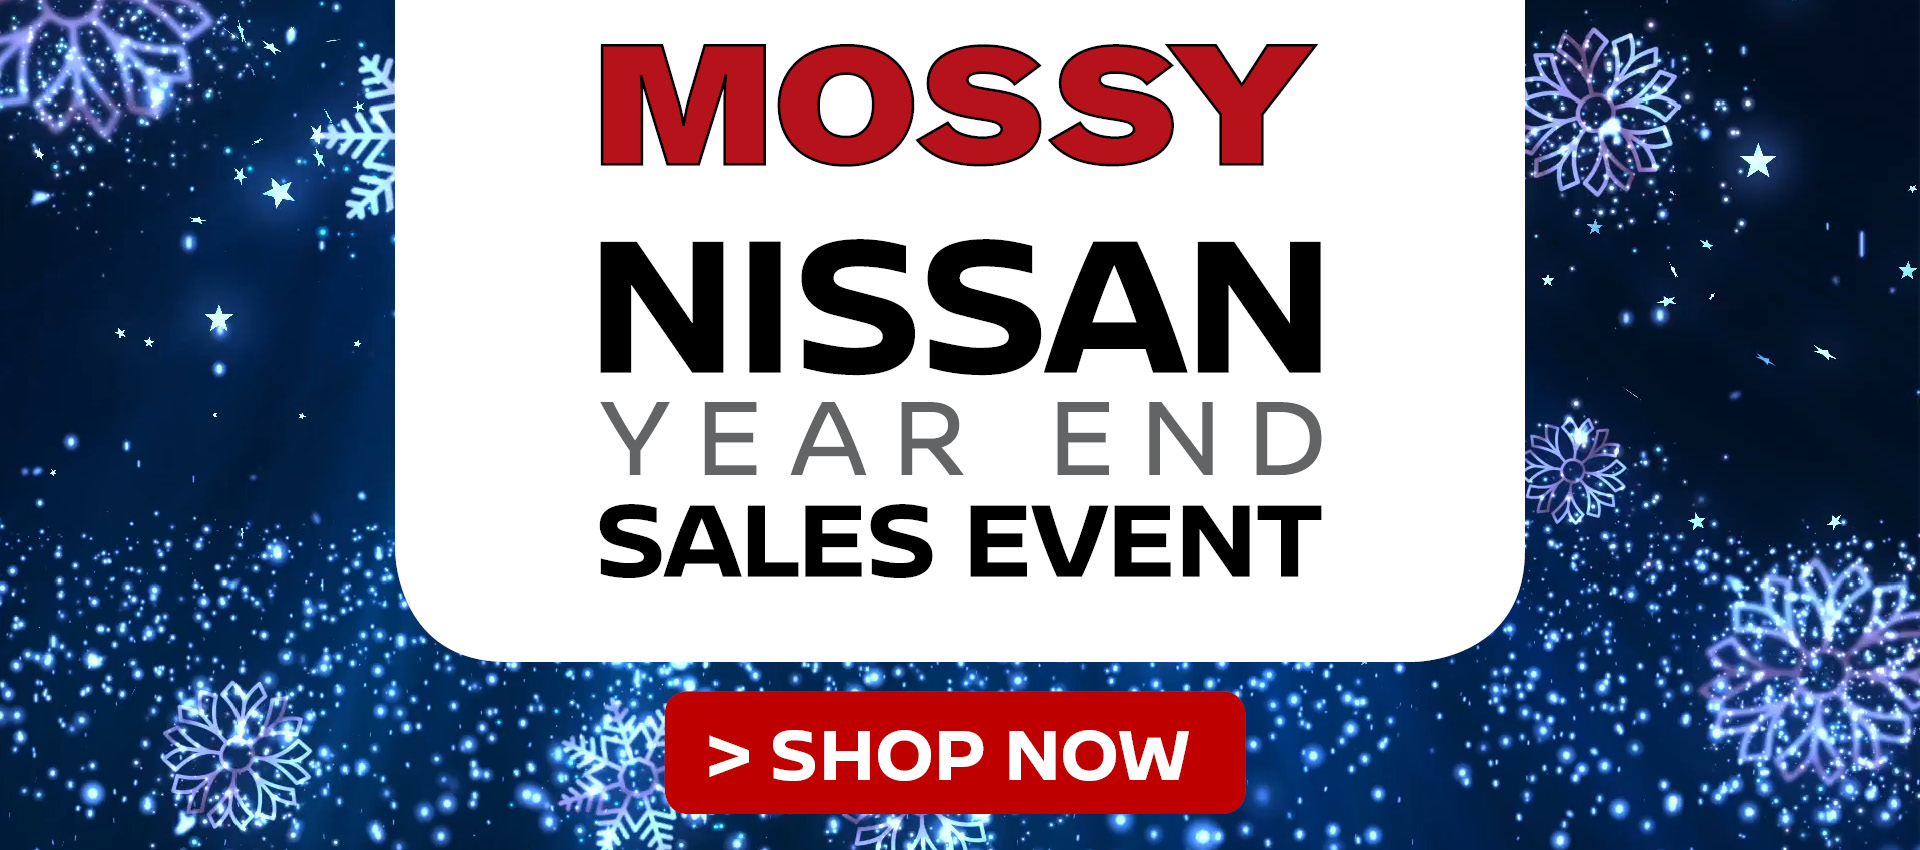 Mossy Nissan - Nissan Sales Event HP